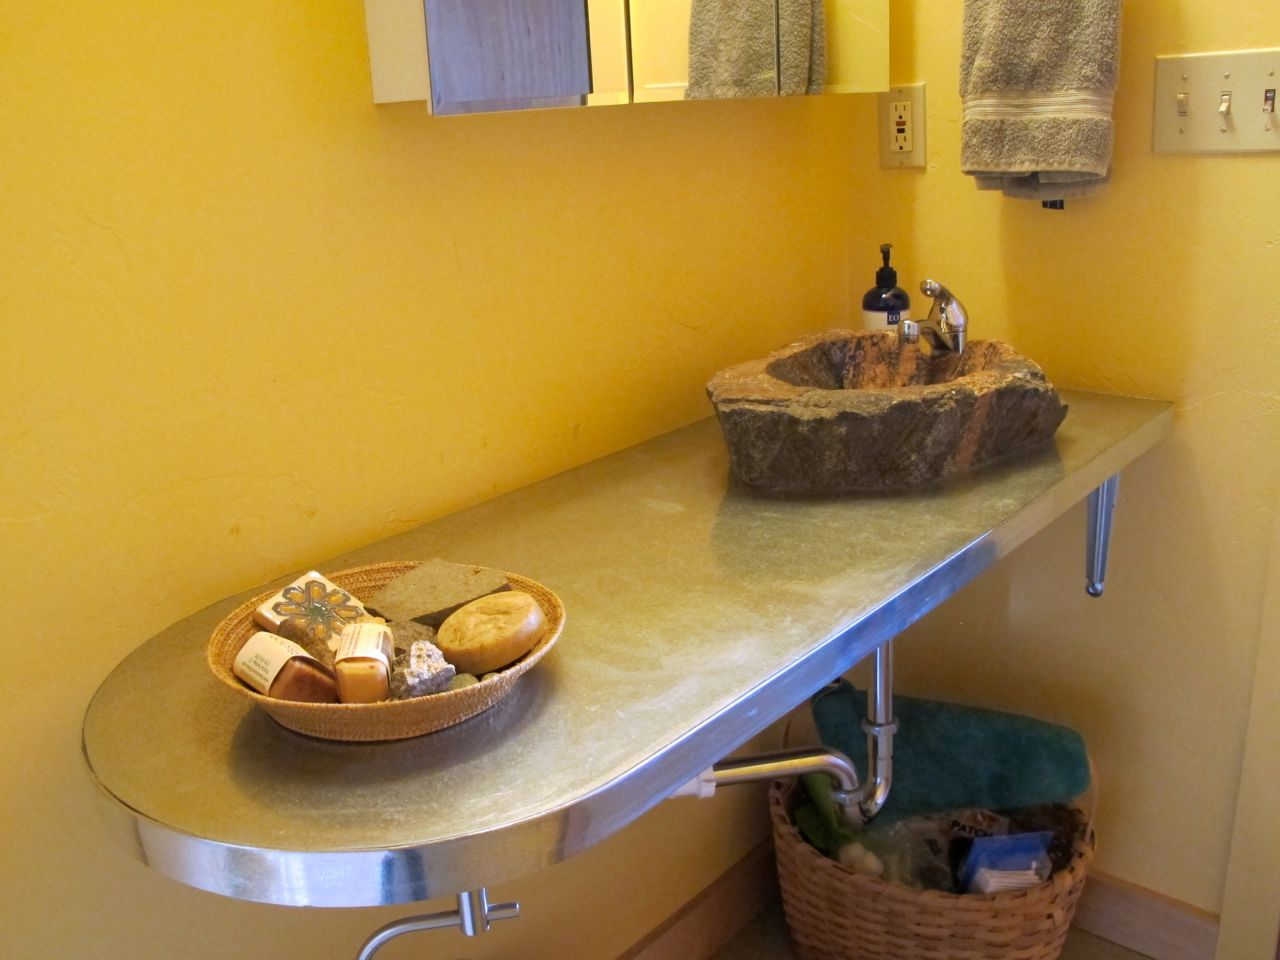 Guest bathroom counter with its new galvanized edging and the beautiful Richard-carved basin.